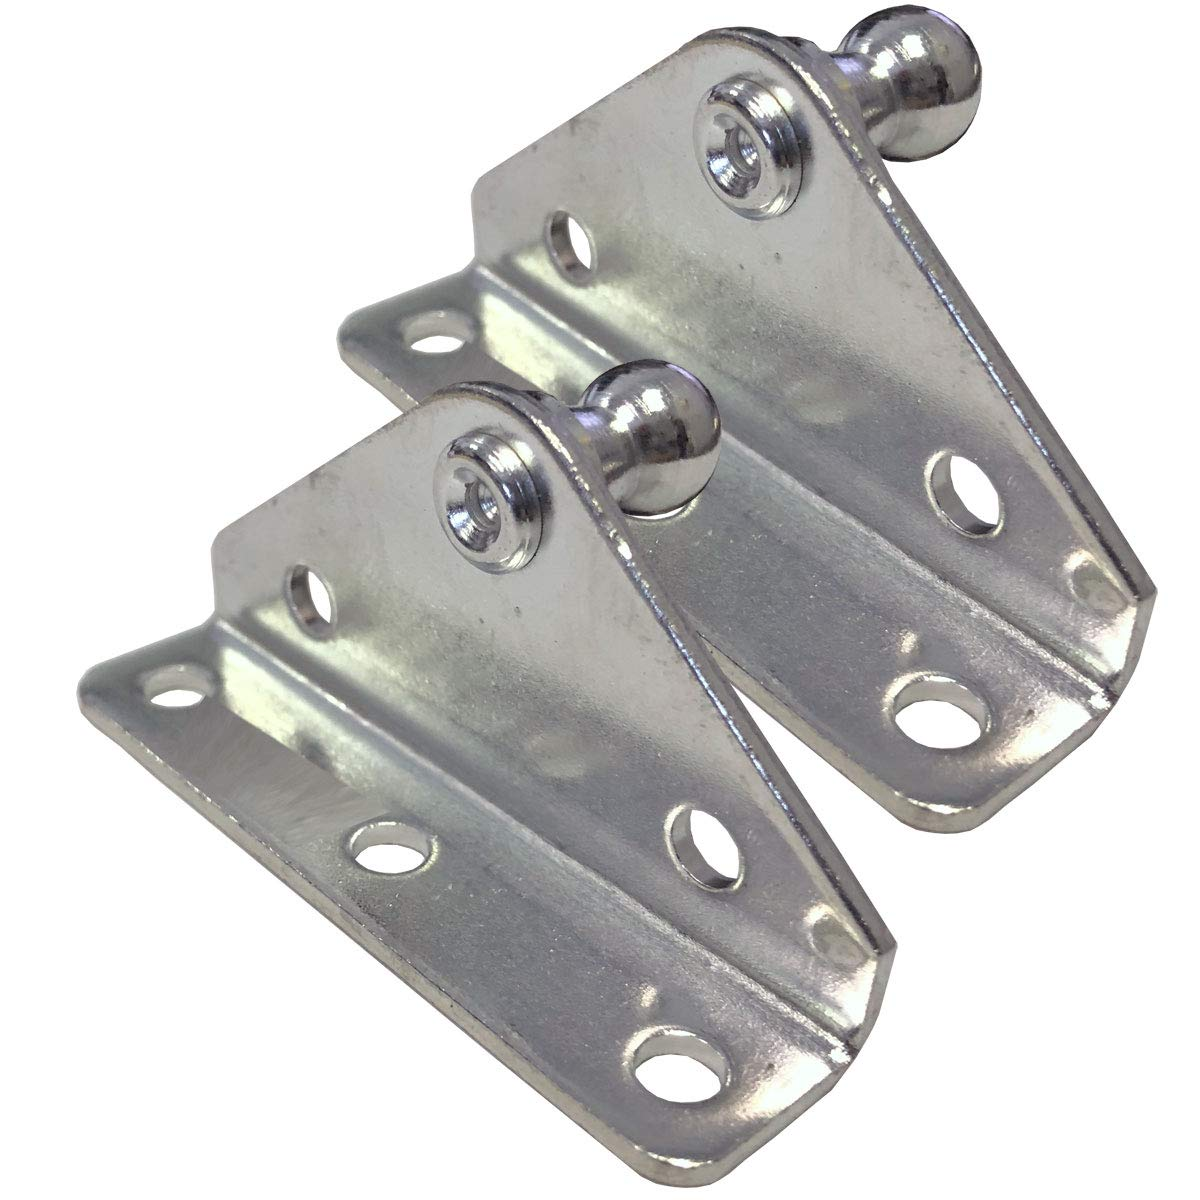 PerfectScore 10MM Ball Stud Angled Lift Support Bracket - Zinc Plated 10 Gauge Steel – Lift Support Bracket for Gas Spring/Prop/Strut - Pack of 2 Gordon Glass Co.